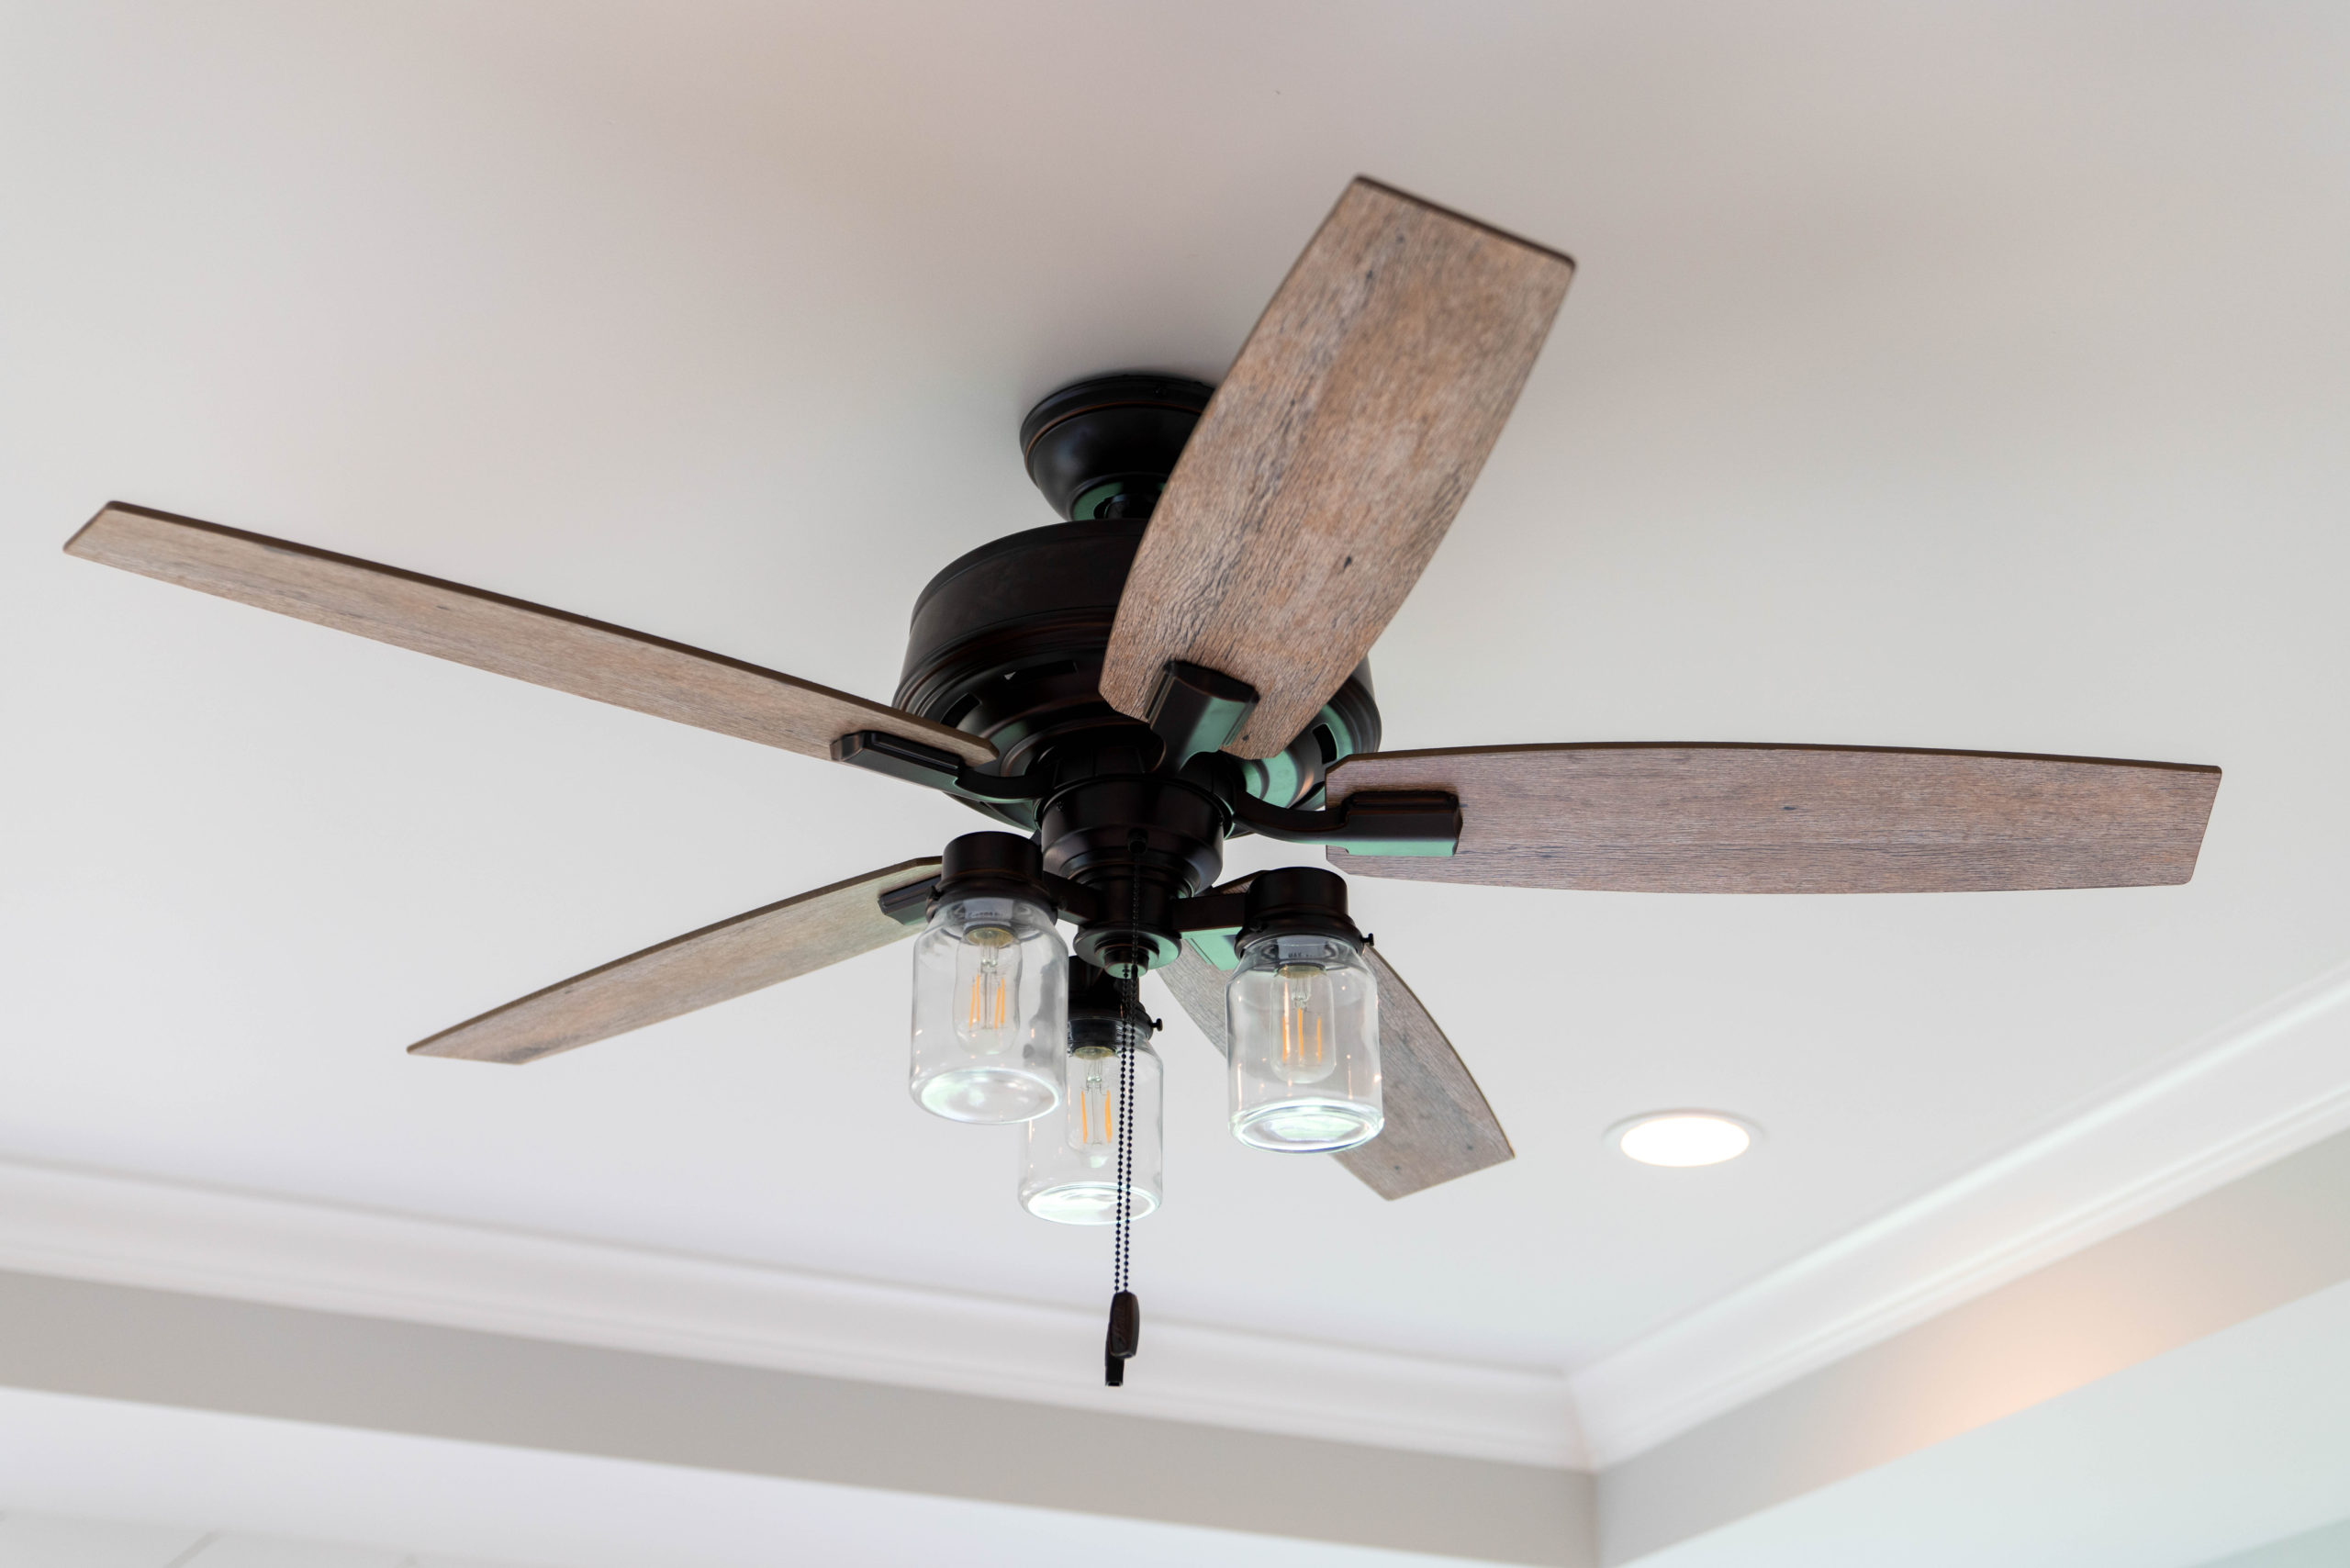 black metal and light hard ceiling fan on tray ceiling